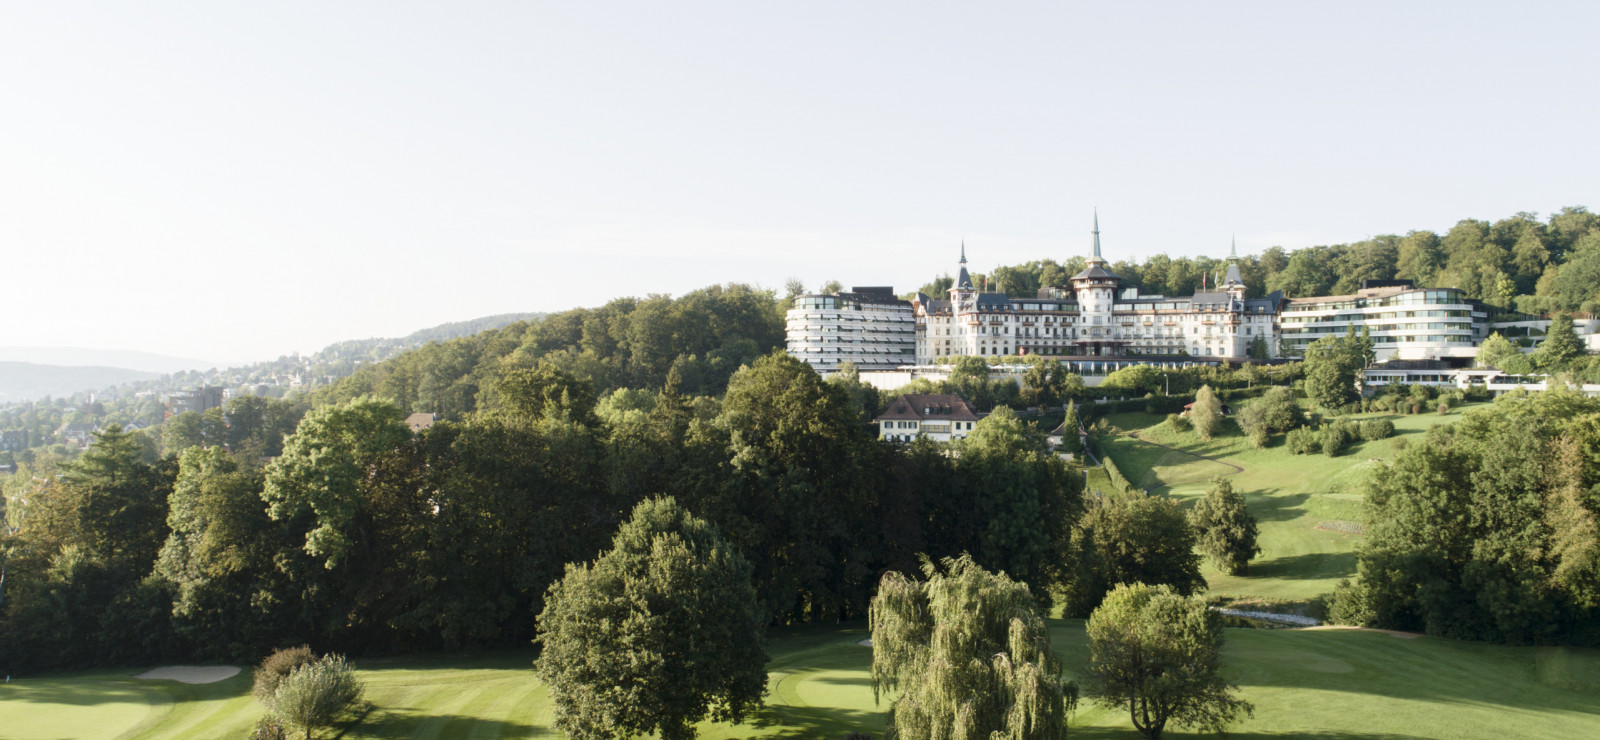 Wellnesshotel The Dolder Grand | Zürich